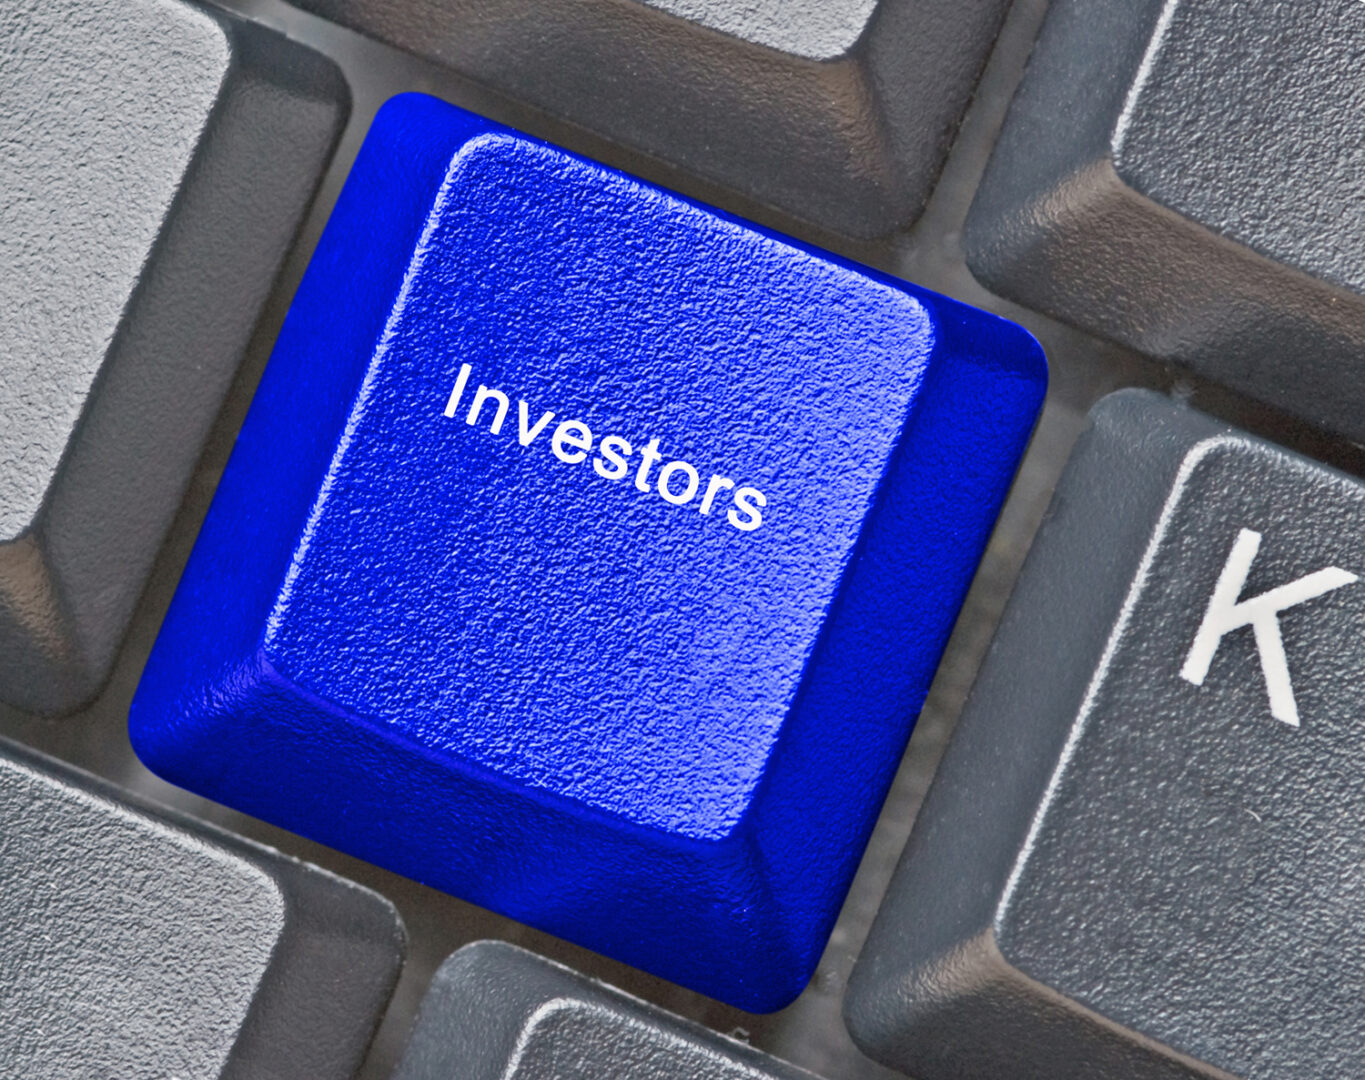 keyboard with Hot key for investors